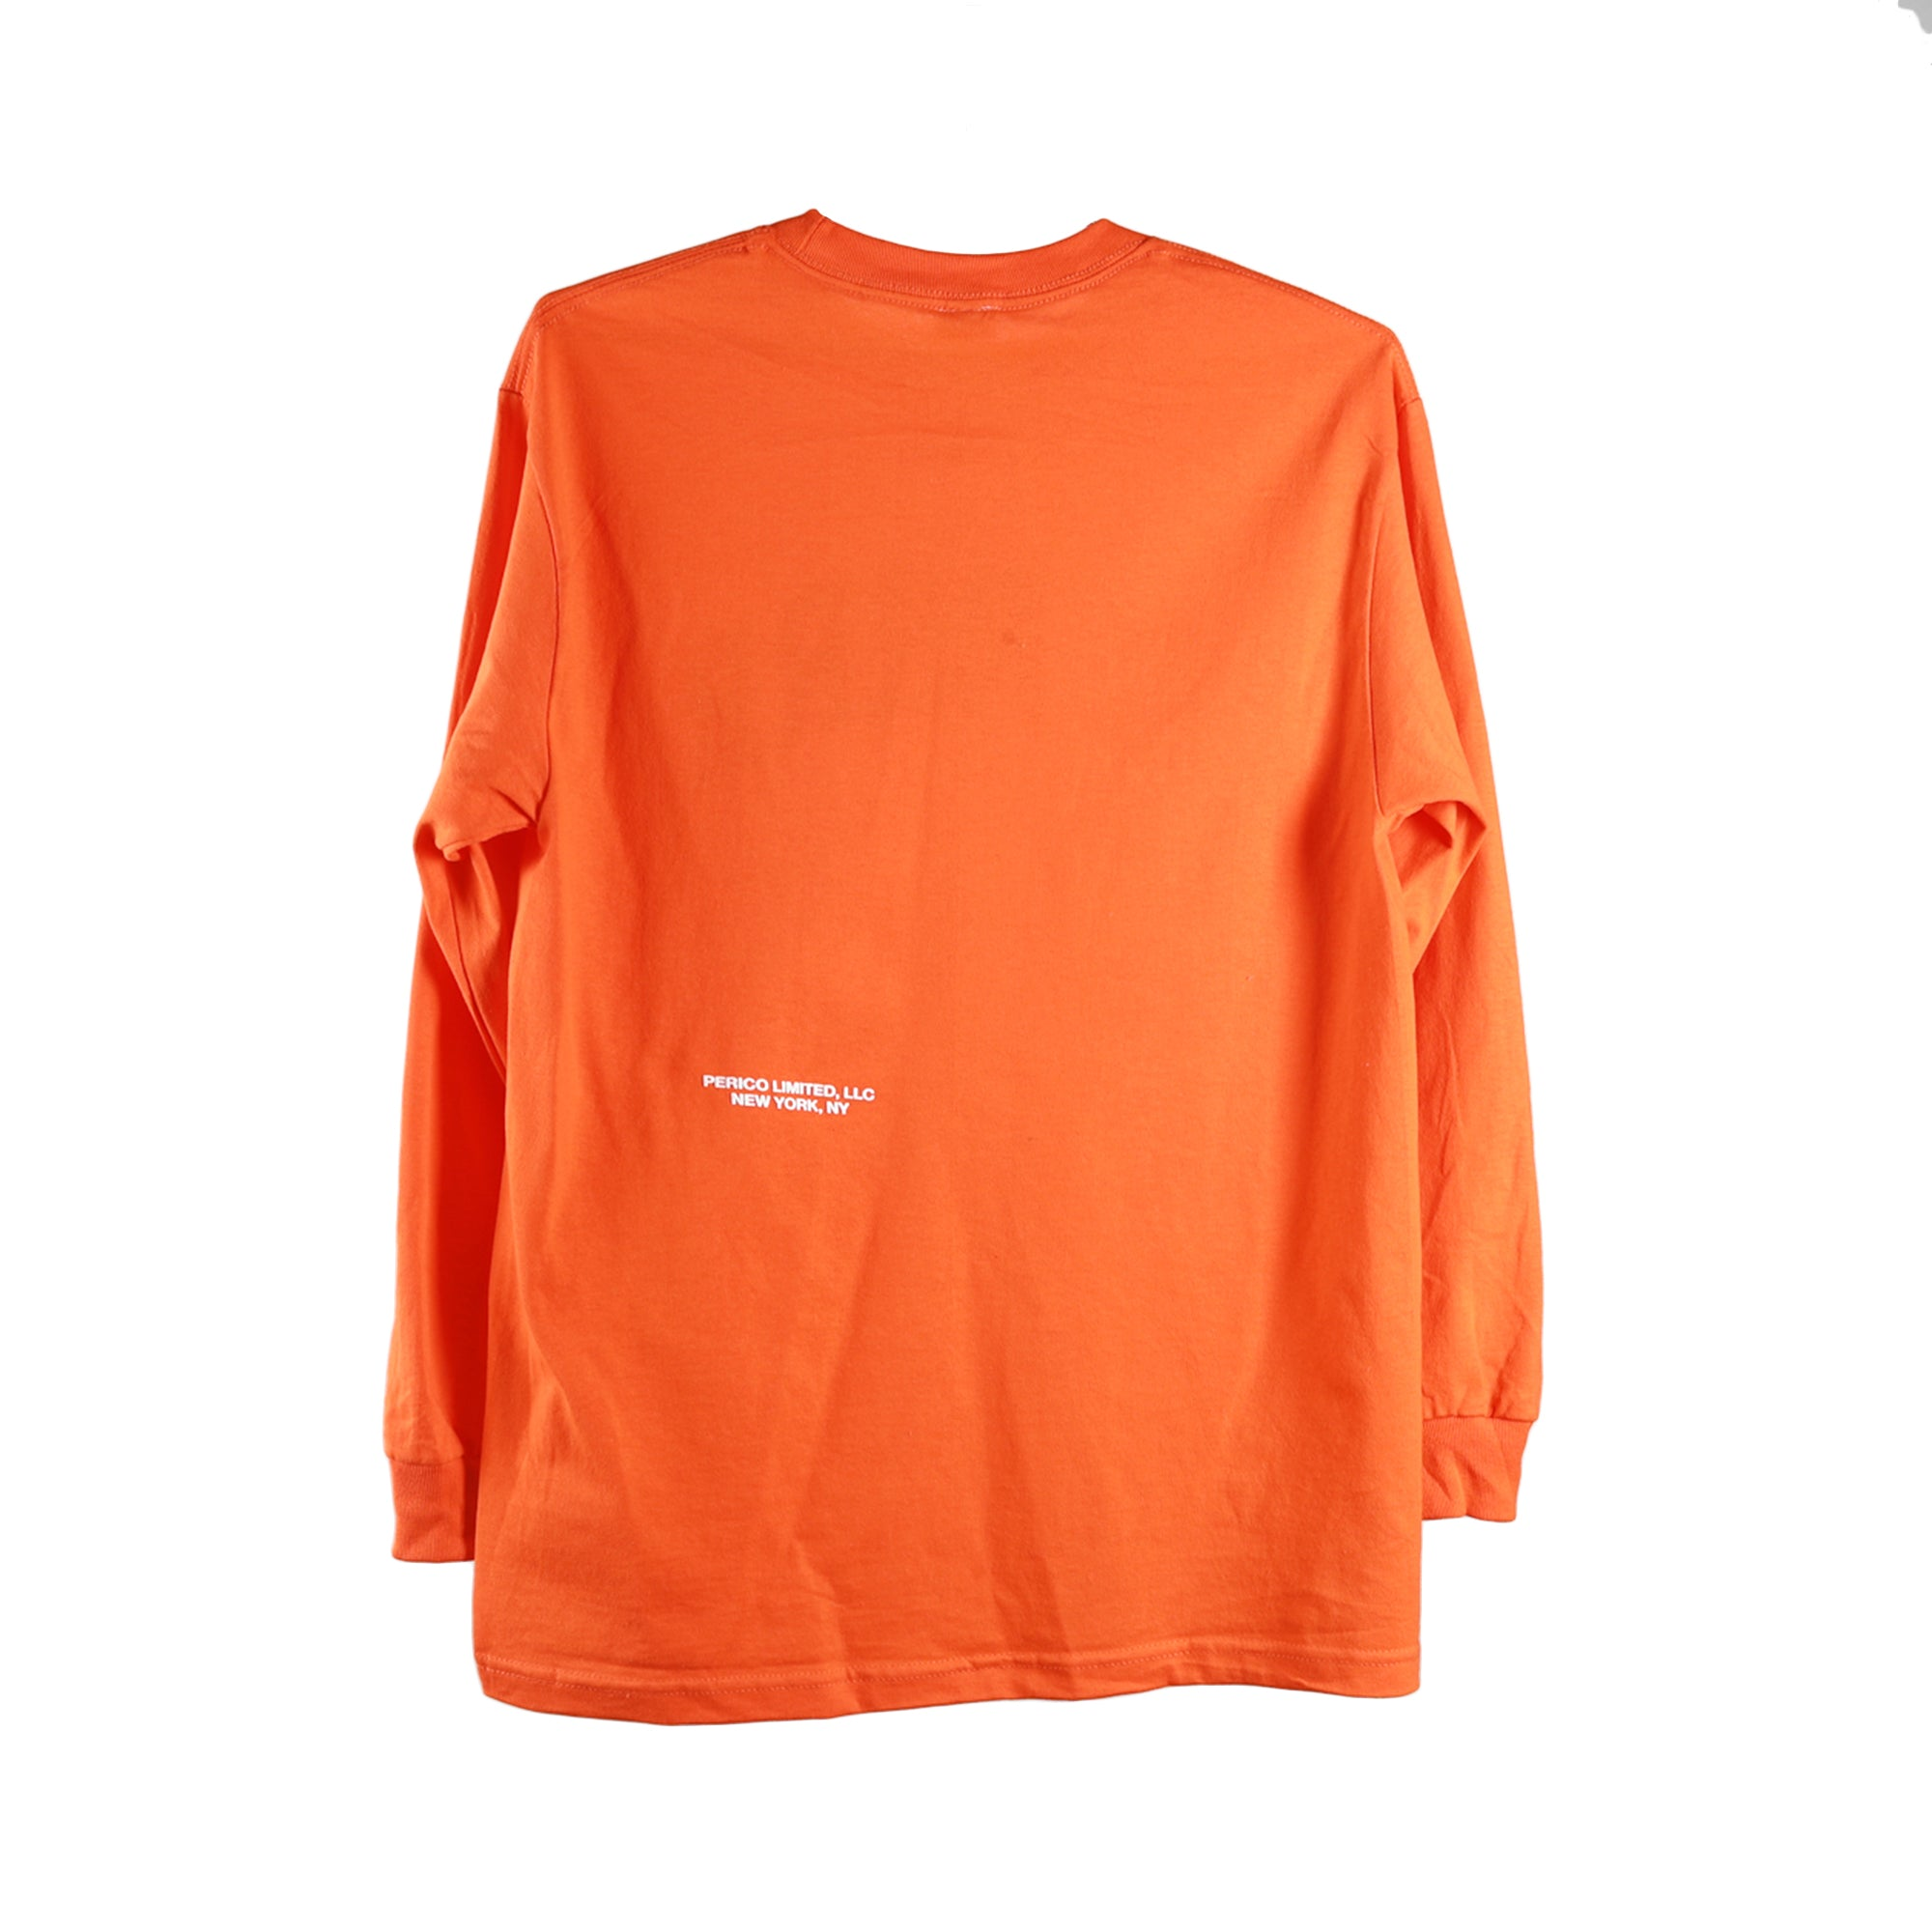 Yerrrr - Knicks Orange L/S